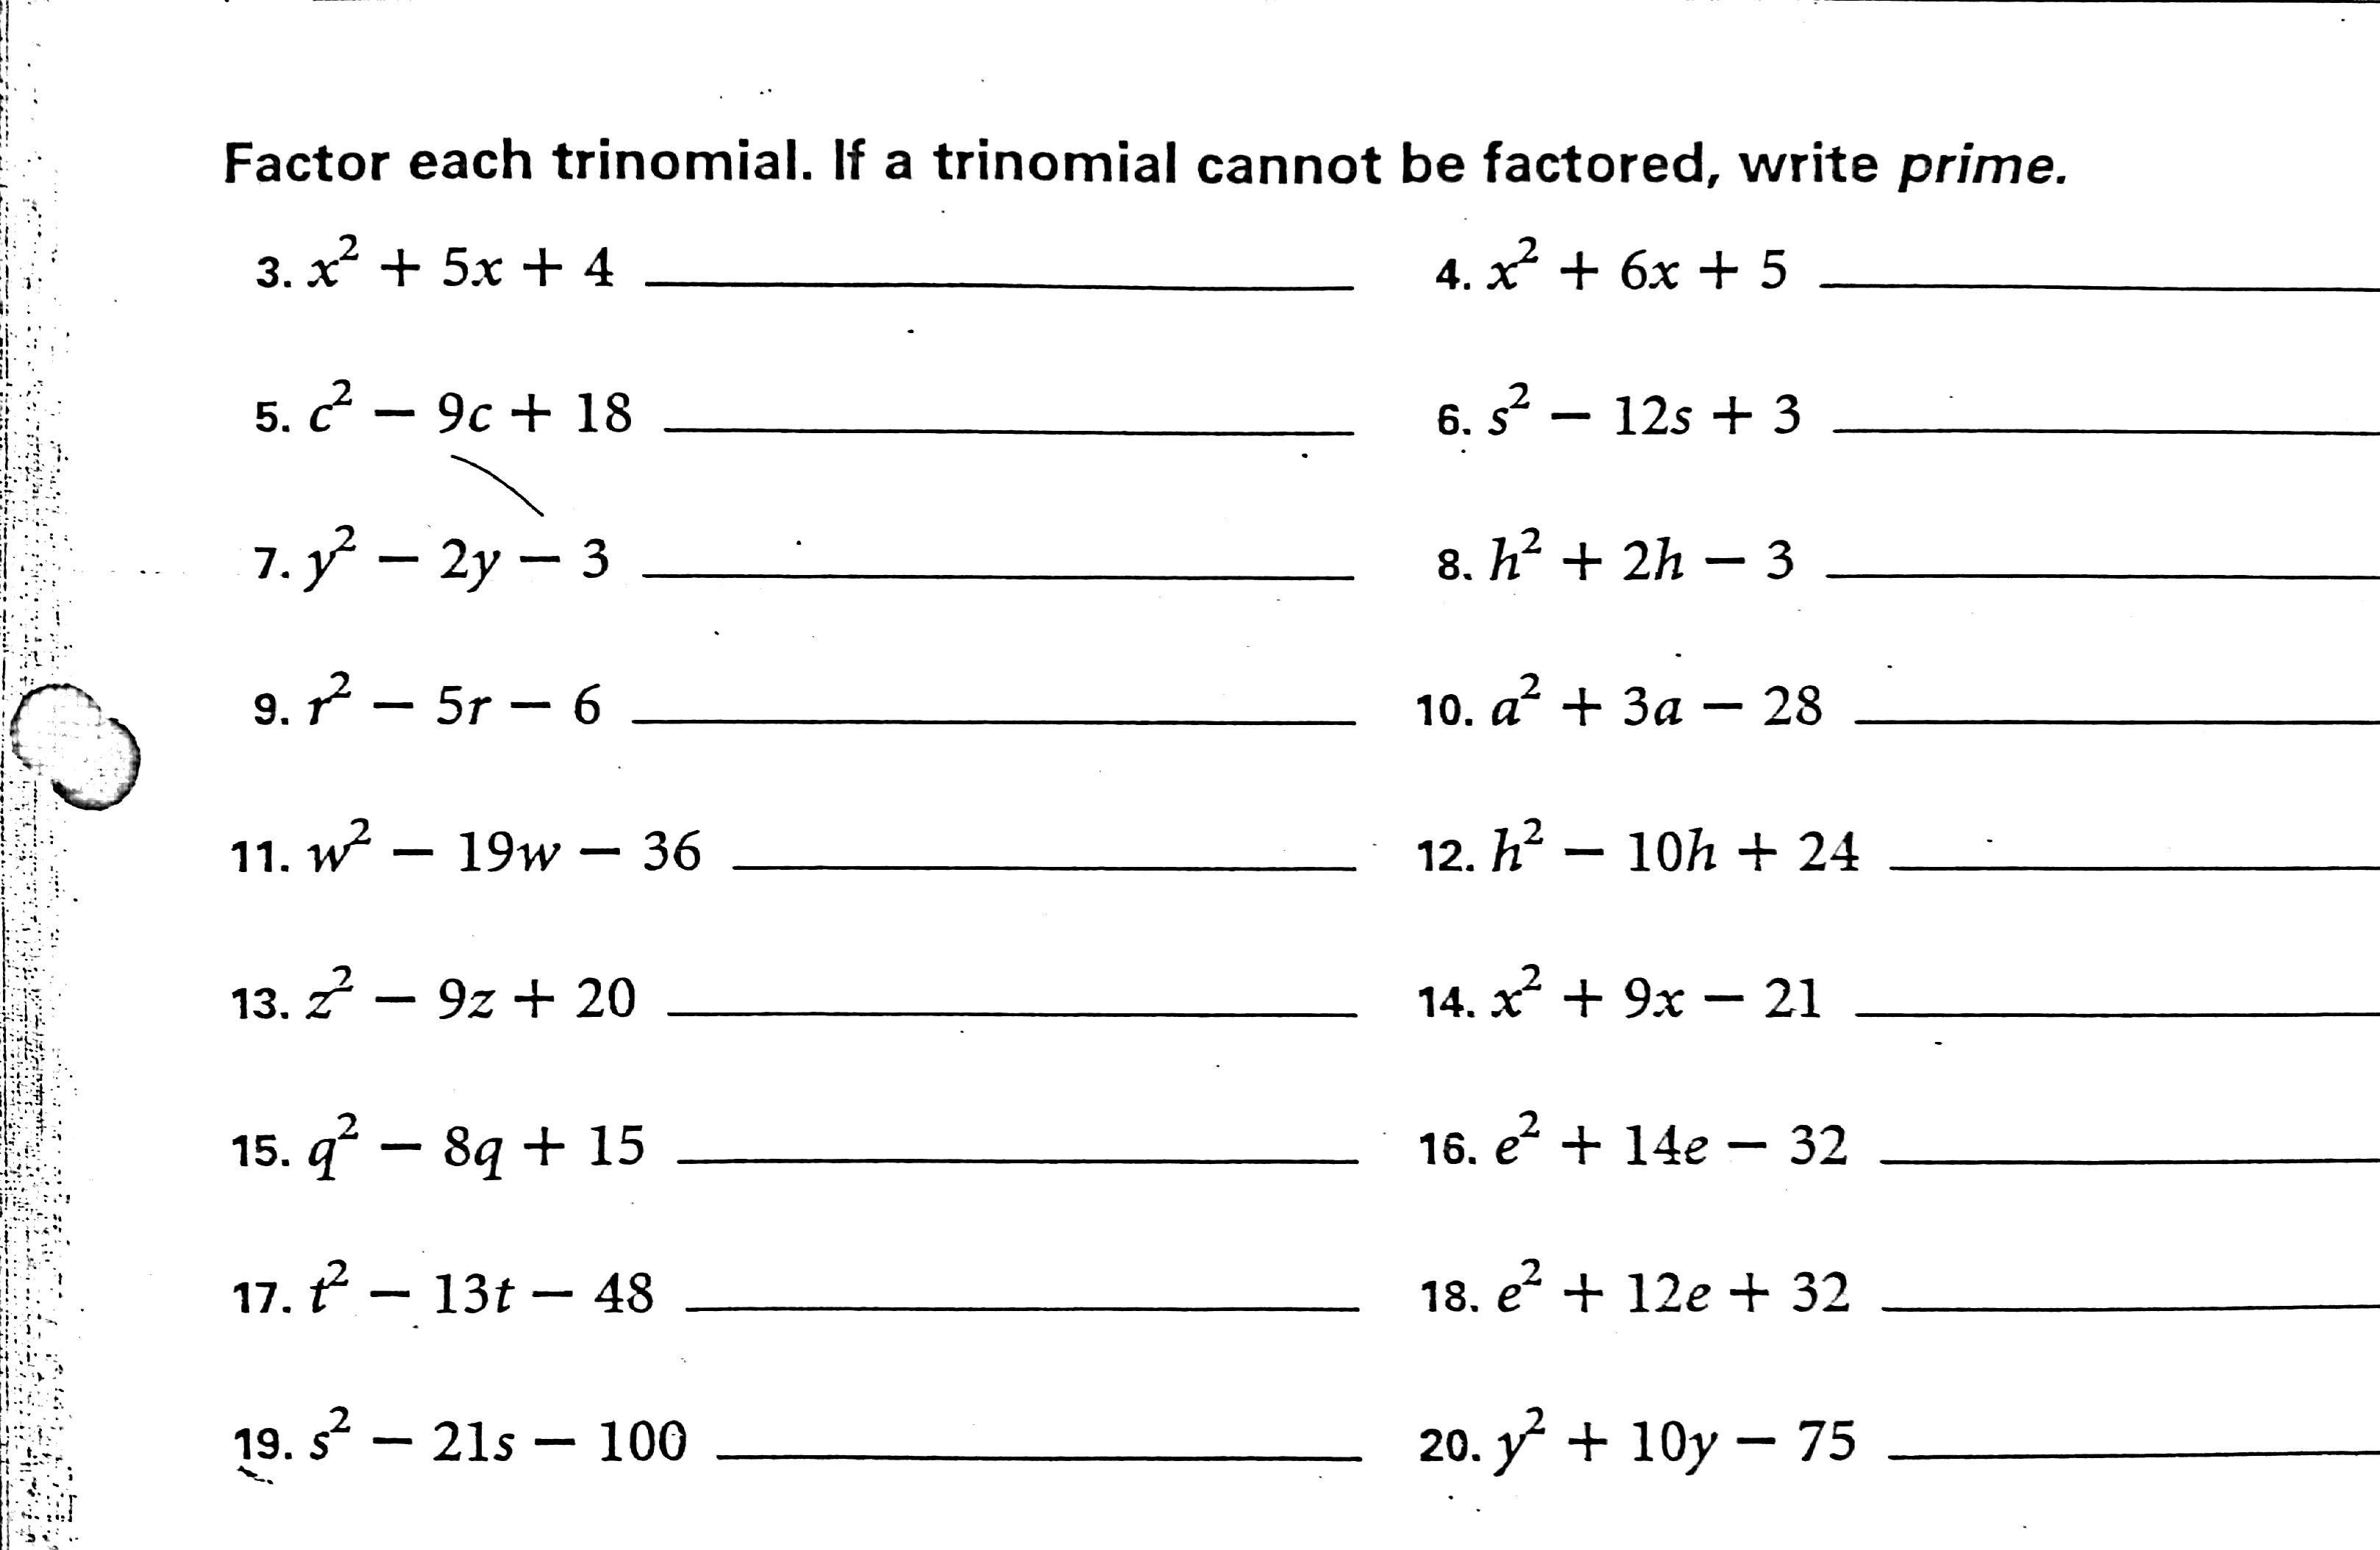 Proatmealus  Seductive Factoring Worksheet  Delwfgcom With Luxury Factoring Polynomials Practice Worksheet With Answers Coterraneo With Beautiful Worksheet On Triangles Also Worksheets On Pronouns For Grade  In Addition Maths Negative Numbers Worksheet And Free Synonyms Worksheets As Well As D Shapes Free Worksheets Additionally Ict Worksheets For Kids From Delwfgcom With Proatmealus  Luxury Factoring Worksheet  Delwfgcom With Beautiful Factoring Polynomials Practice Worksheet With Answers Coterraneo And Seductive Worksheet On Triangles Also Worksheets On Pronouns For Grade  In Addition Maths Negative Numbers Worksheet From Delwfgcom